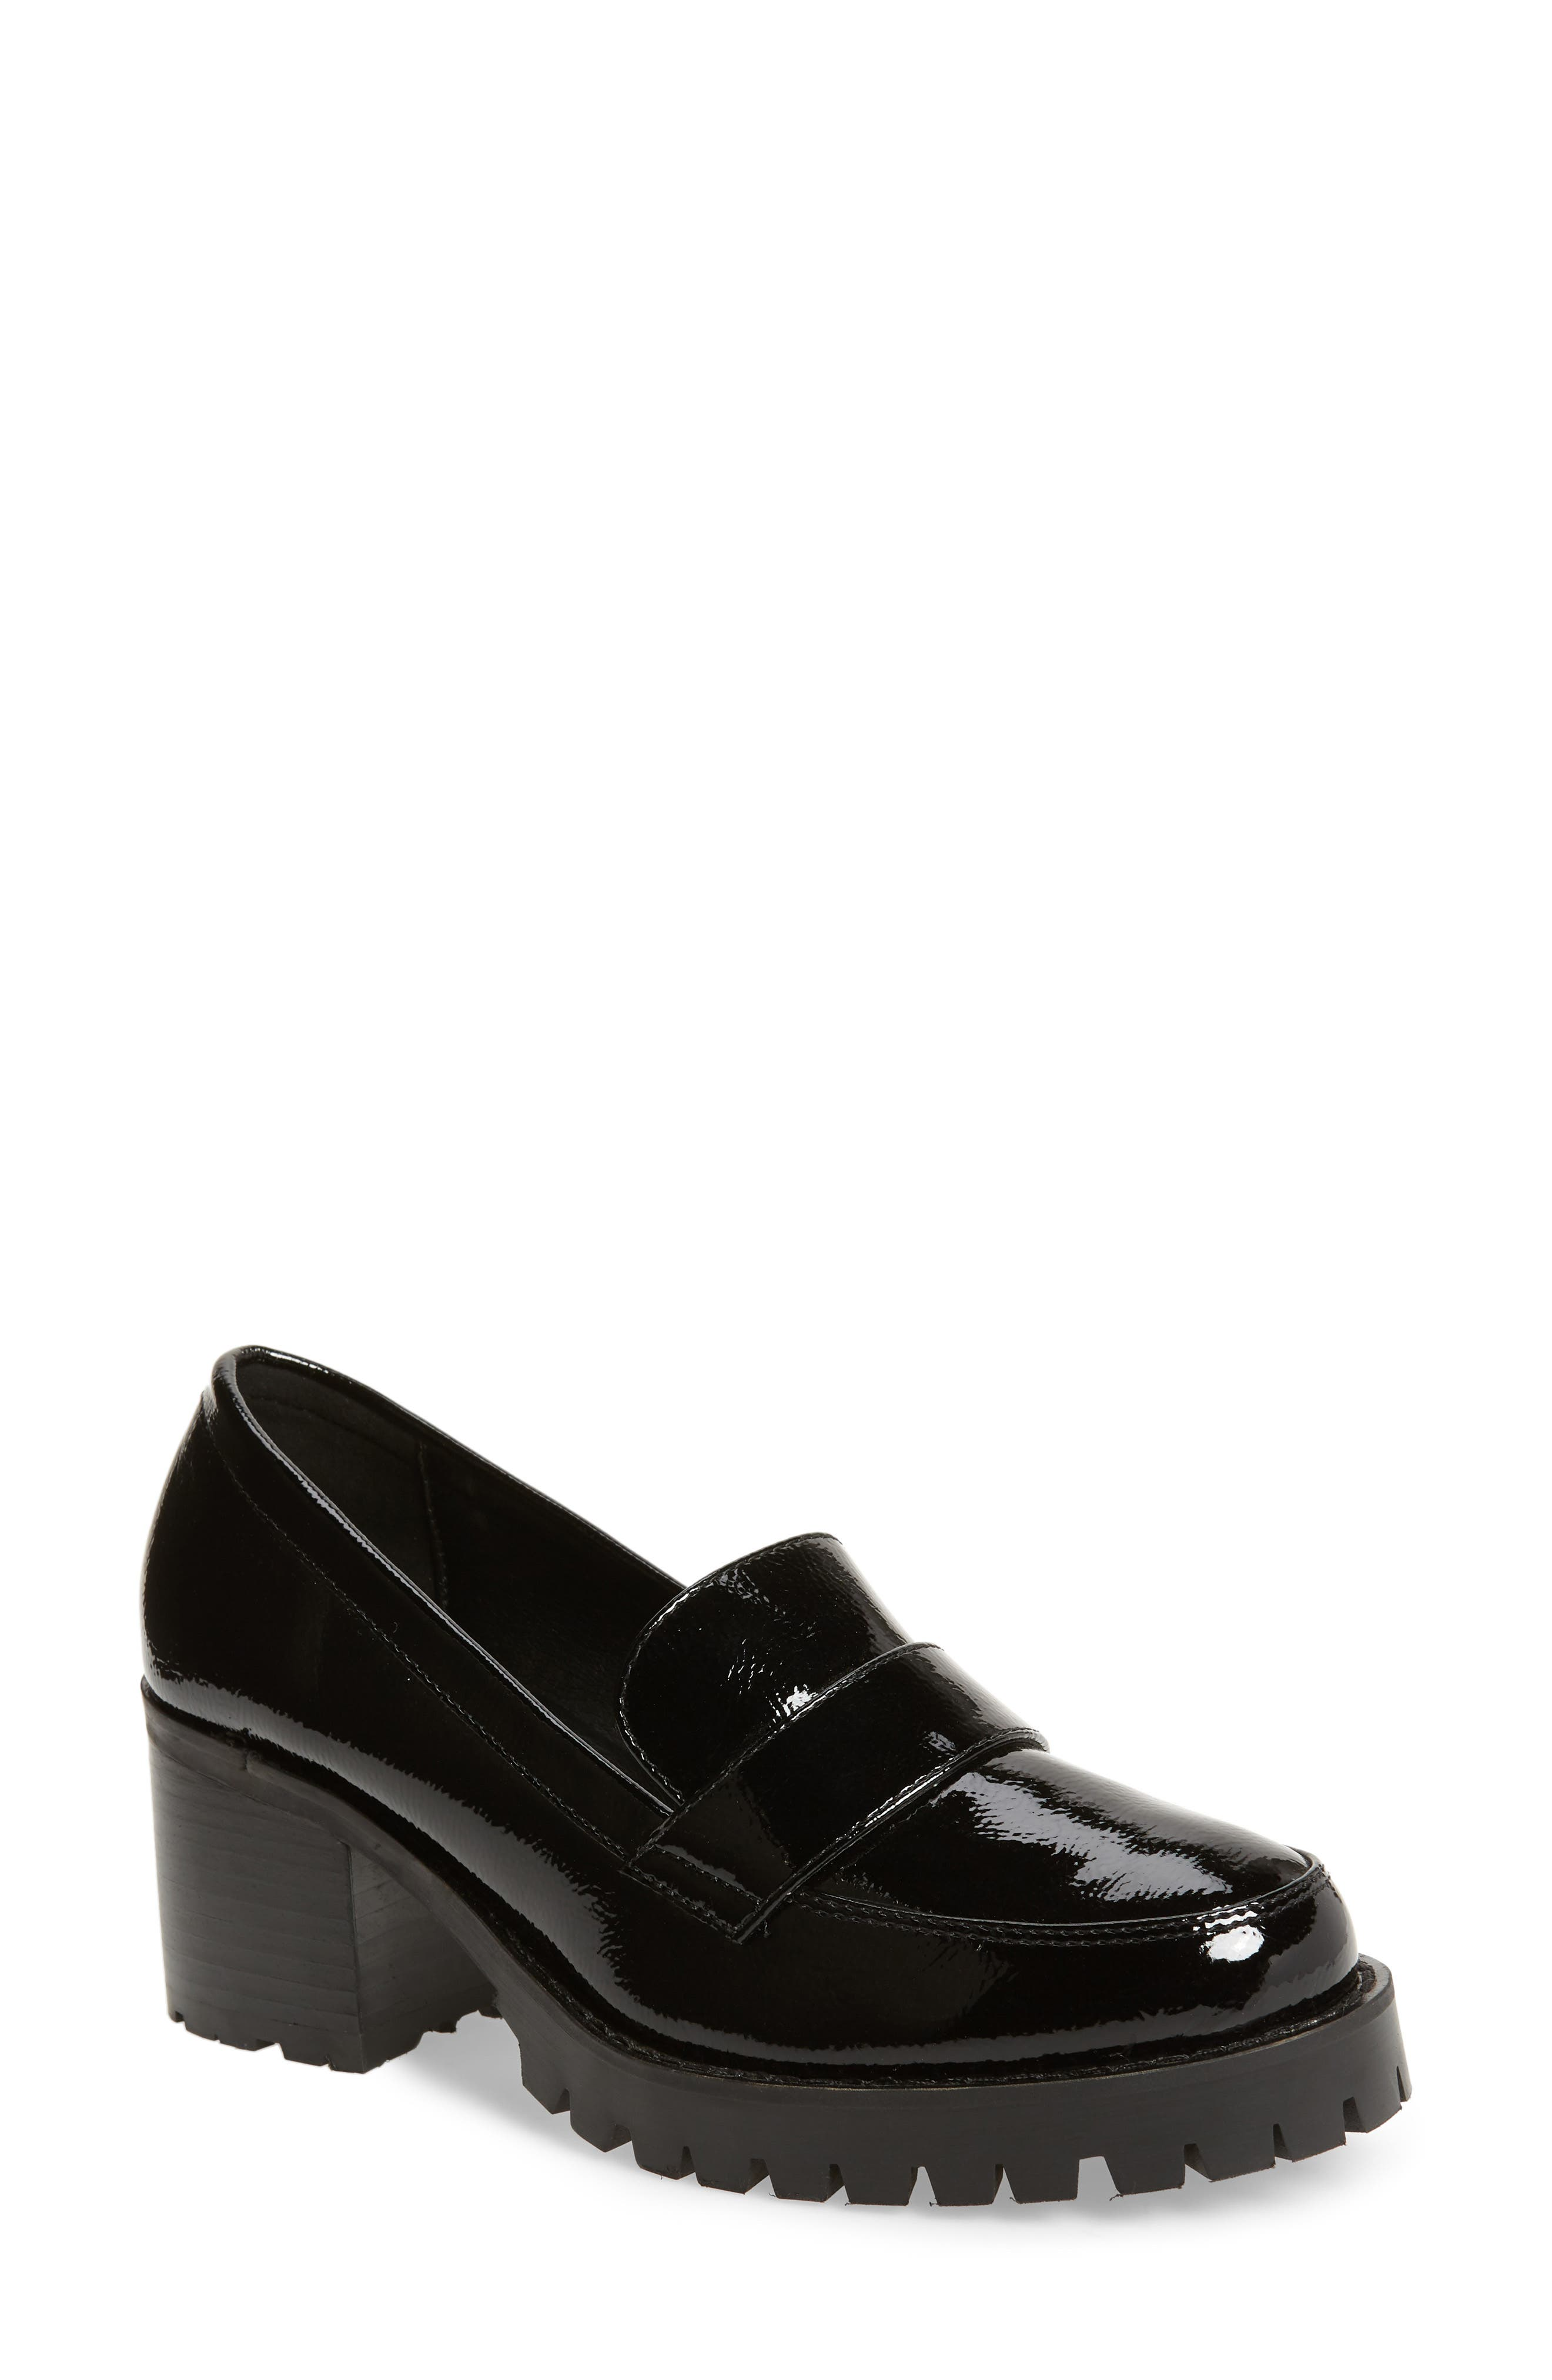 Leighton Platform Loafer,                             Main thumbnail 1, color,                             001